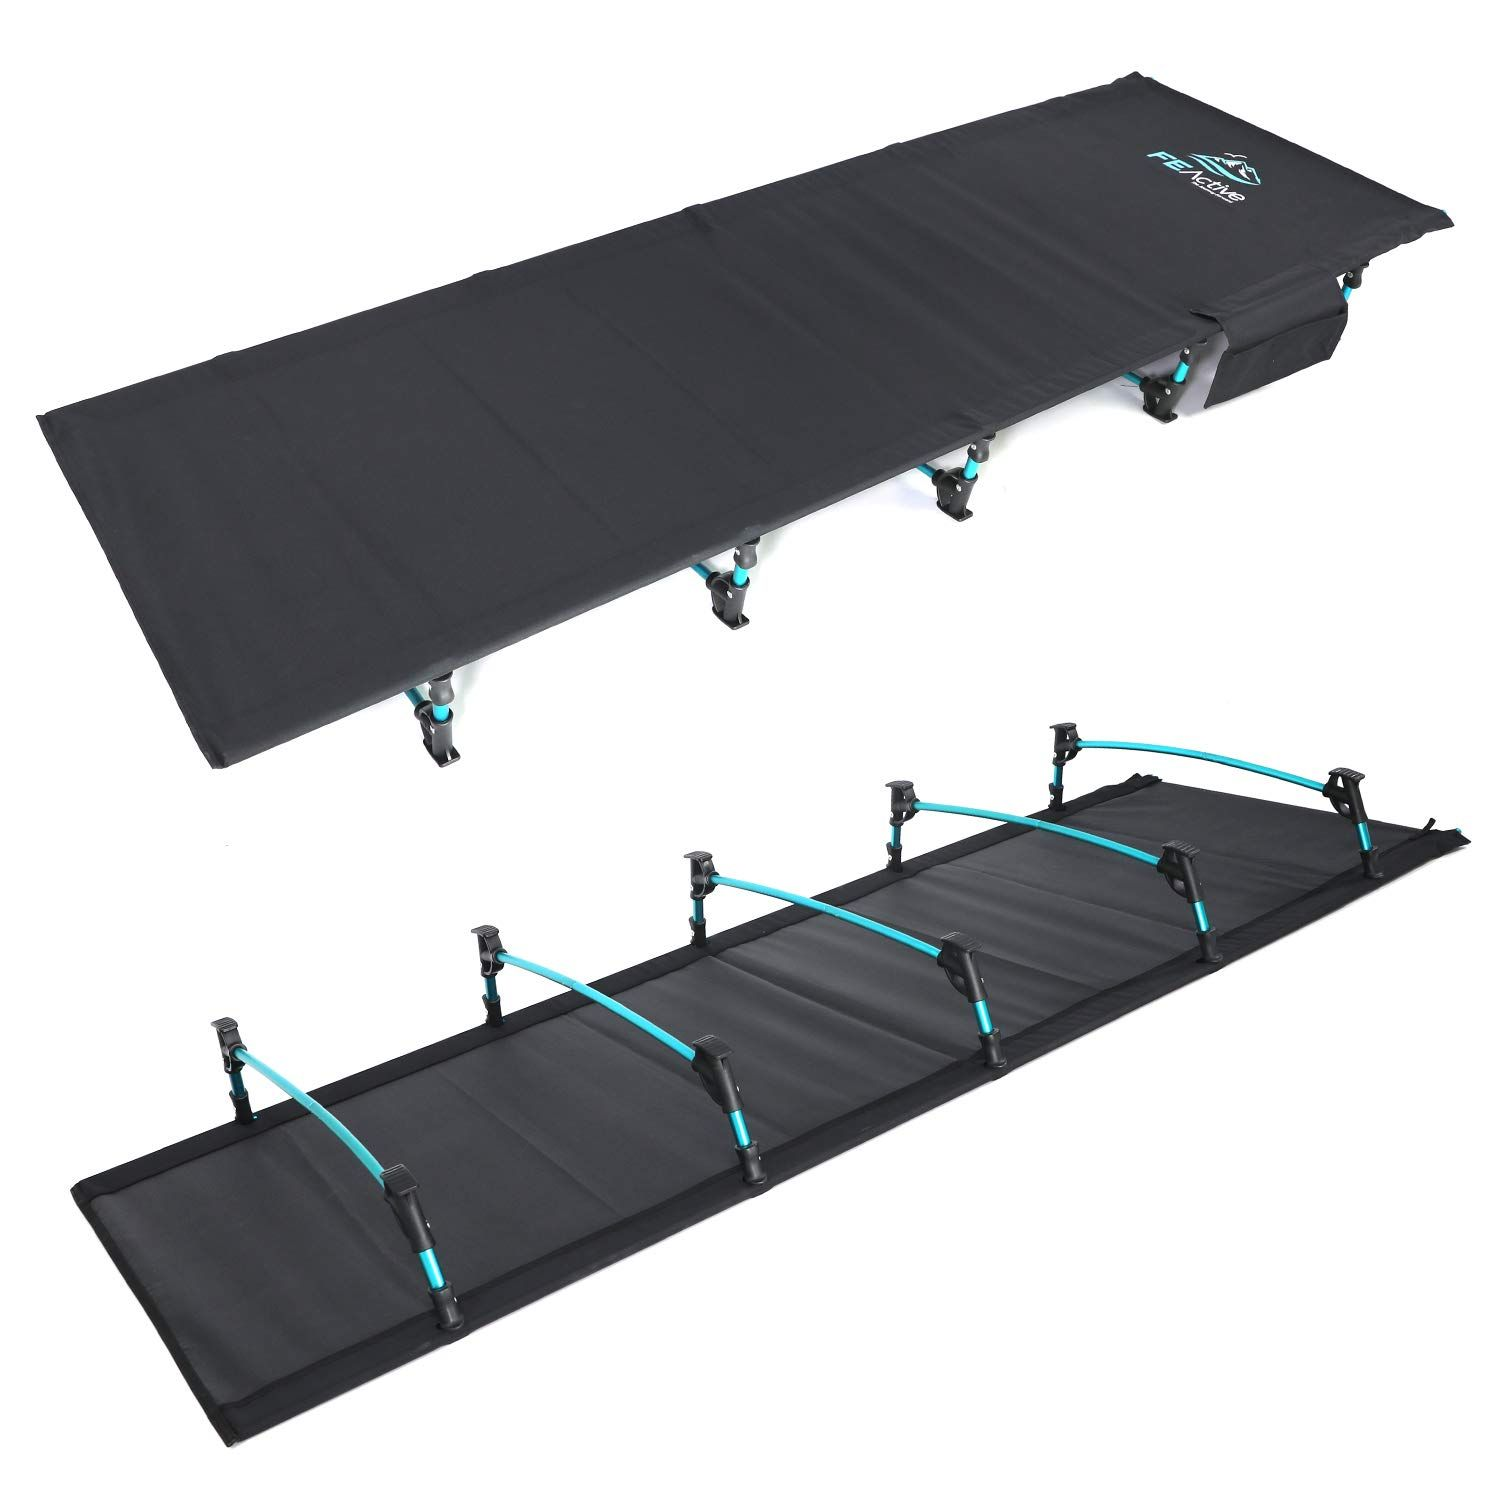 - FE Active - Compact Folding Cot Built With Full Aluminum Designed